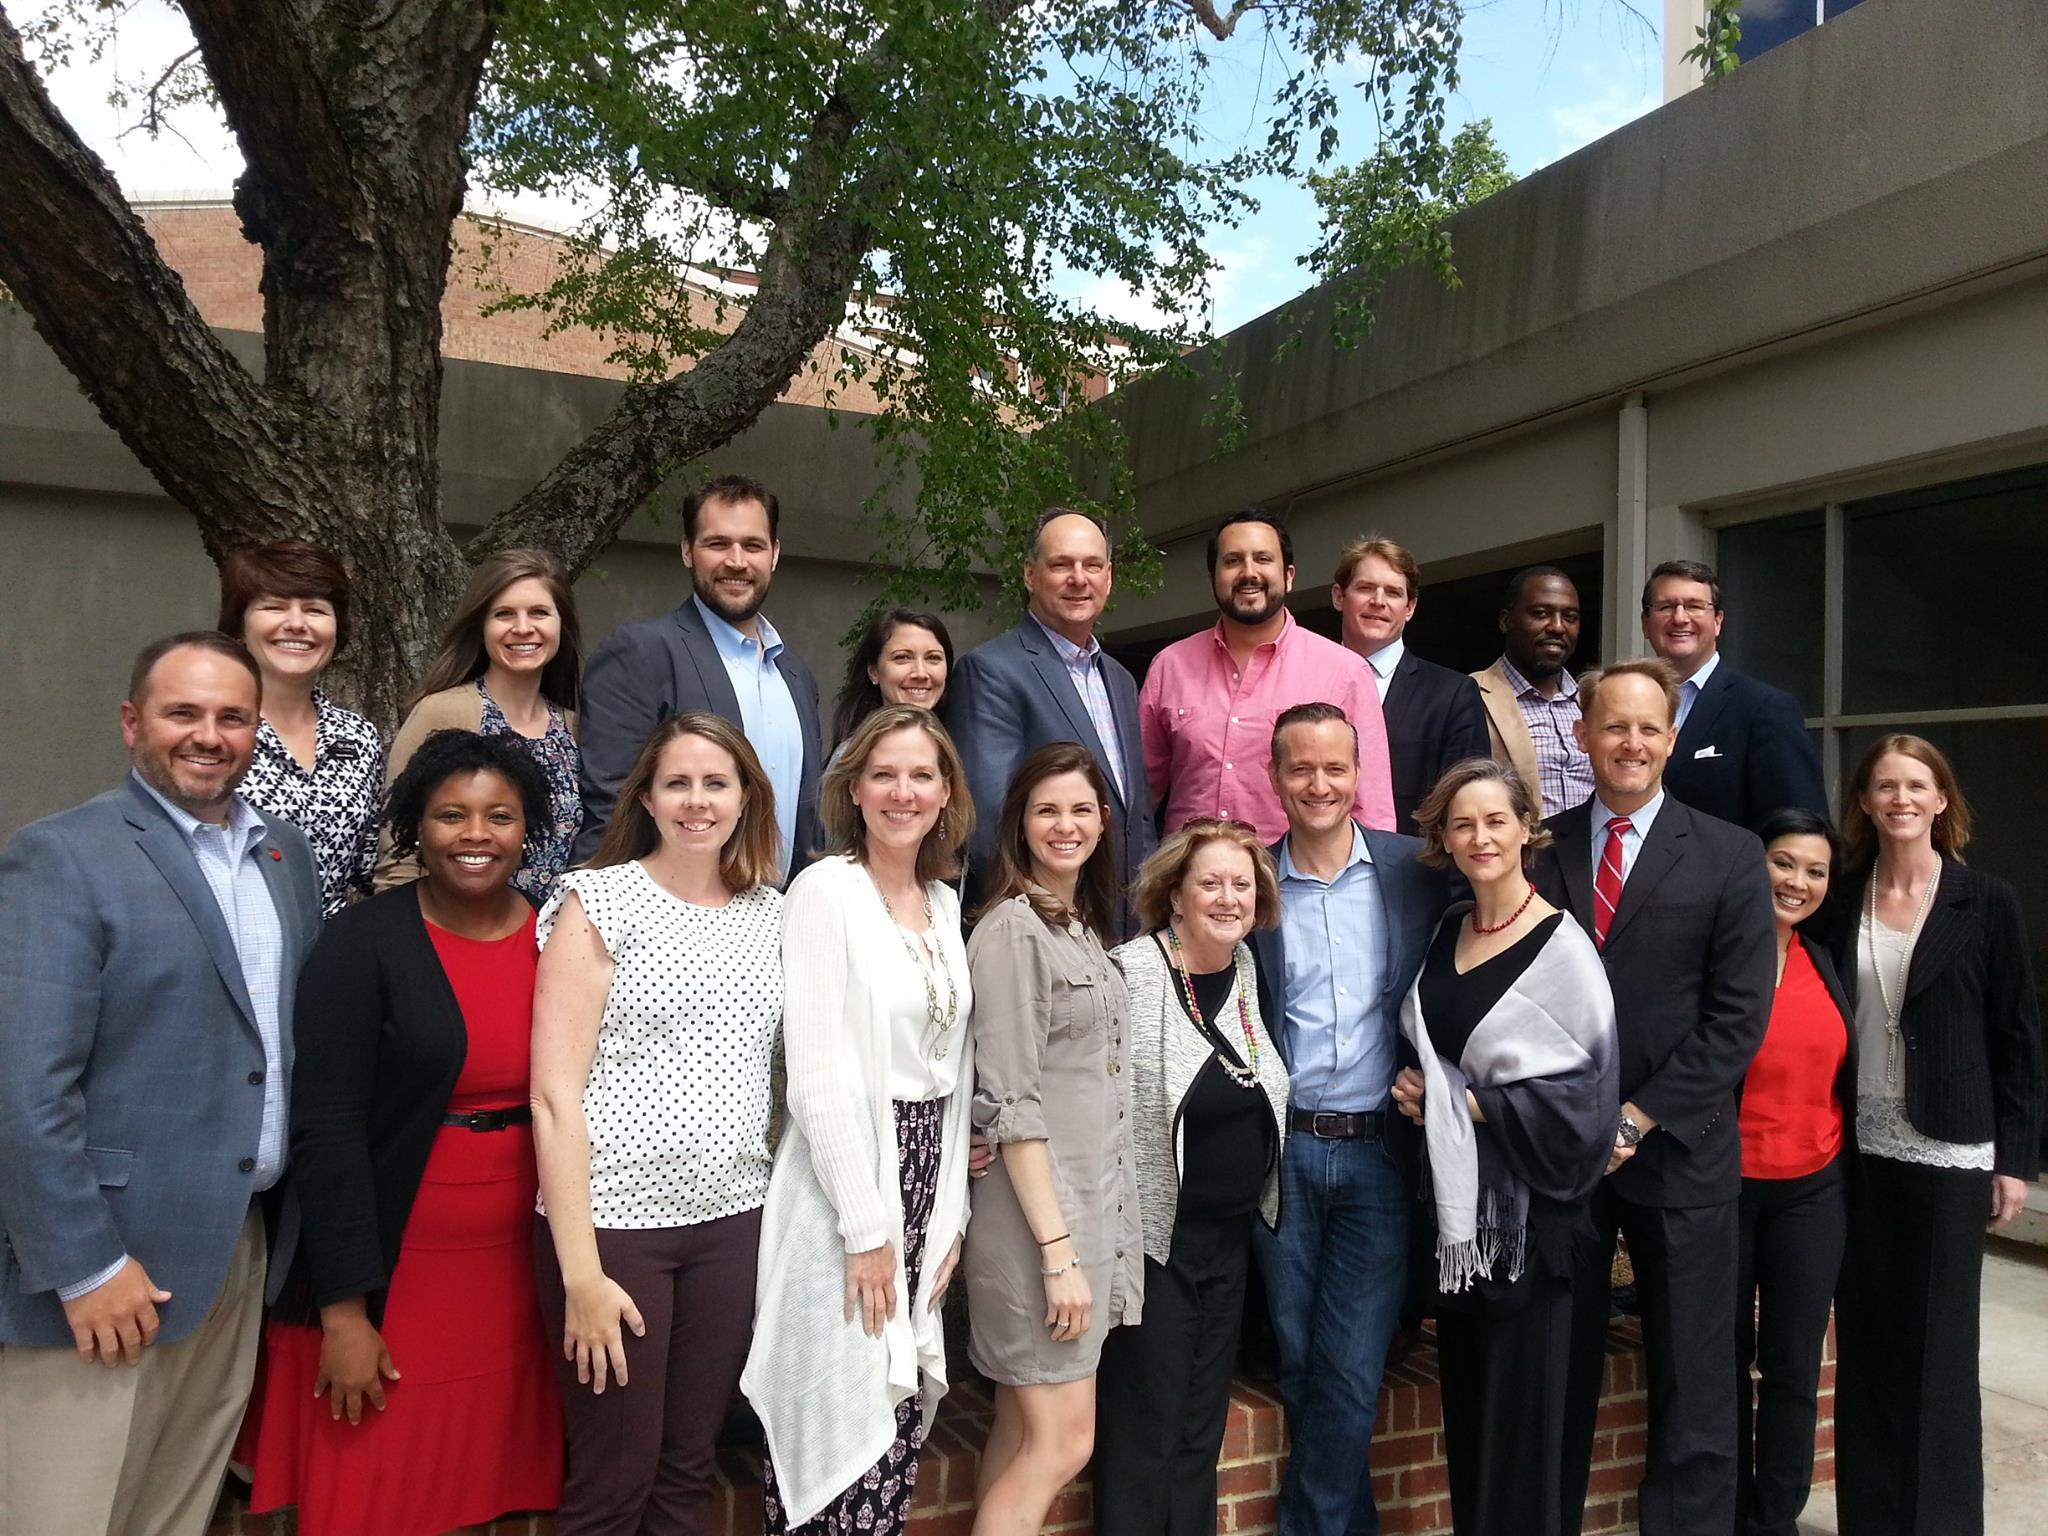 Members of the GSAB pose for a photo following the spring 2015 meeting.